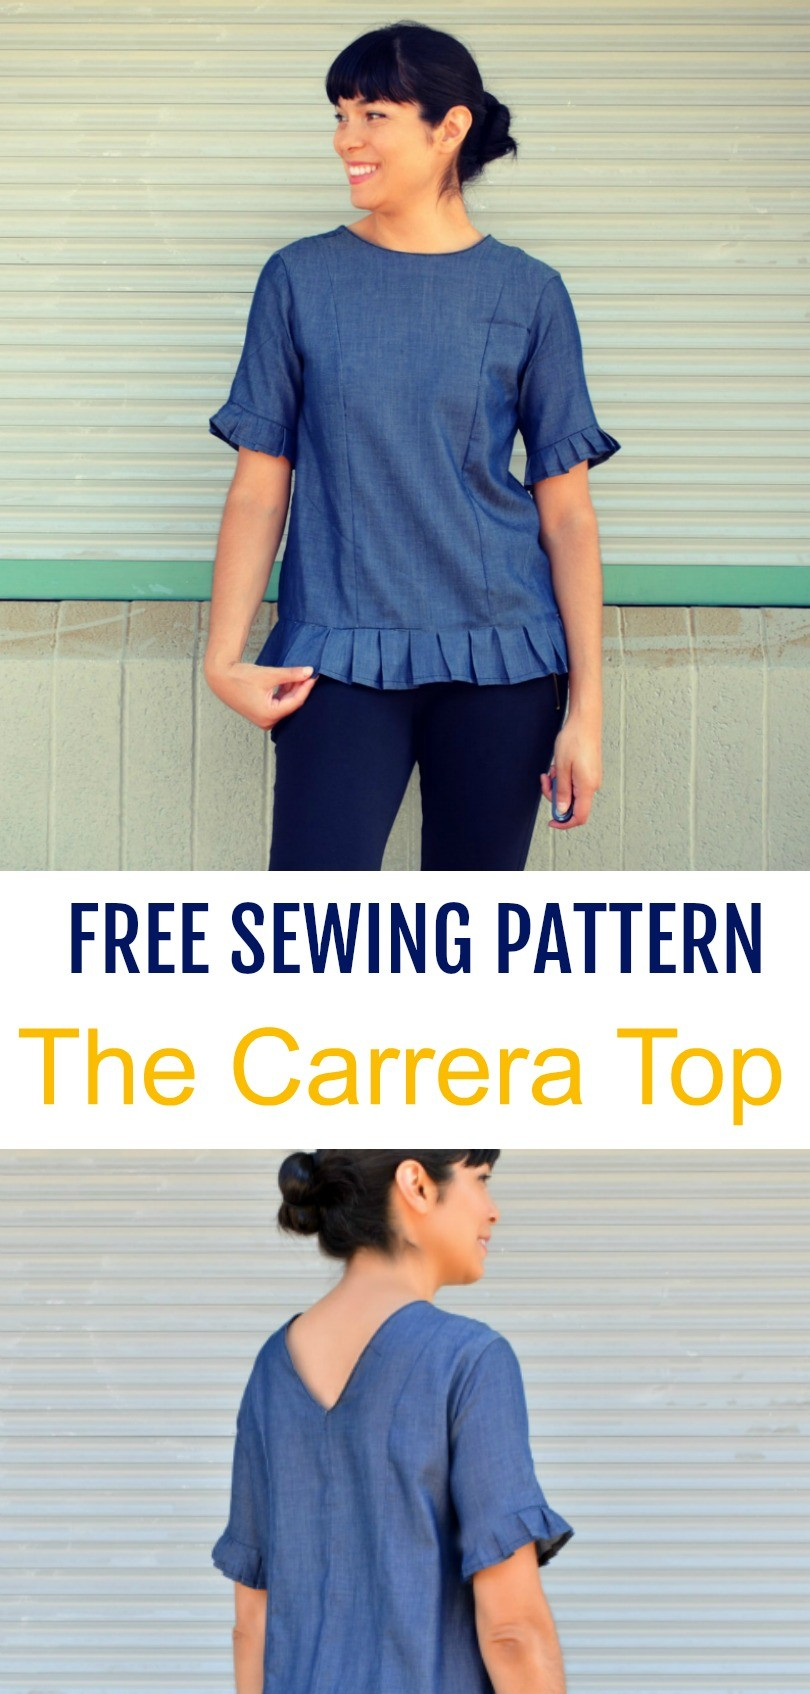 Free pattern alert the carrera top on the cutting floor free pattern alert the carrera top on the cutting floor printable pdf sewing patterns and tutorials for women jeuxipadfo Images